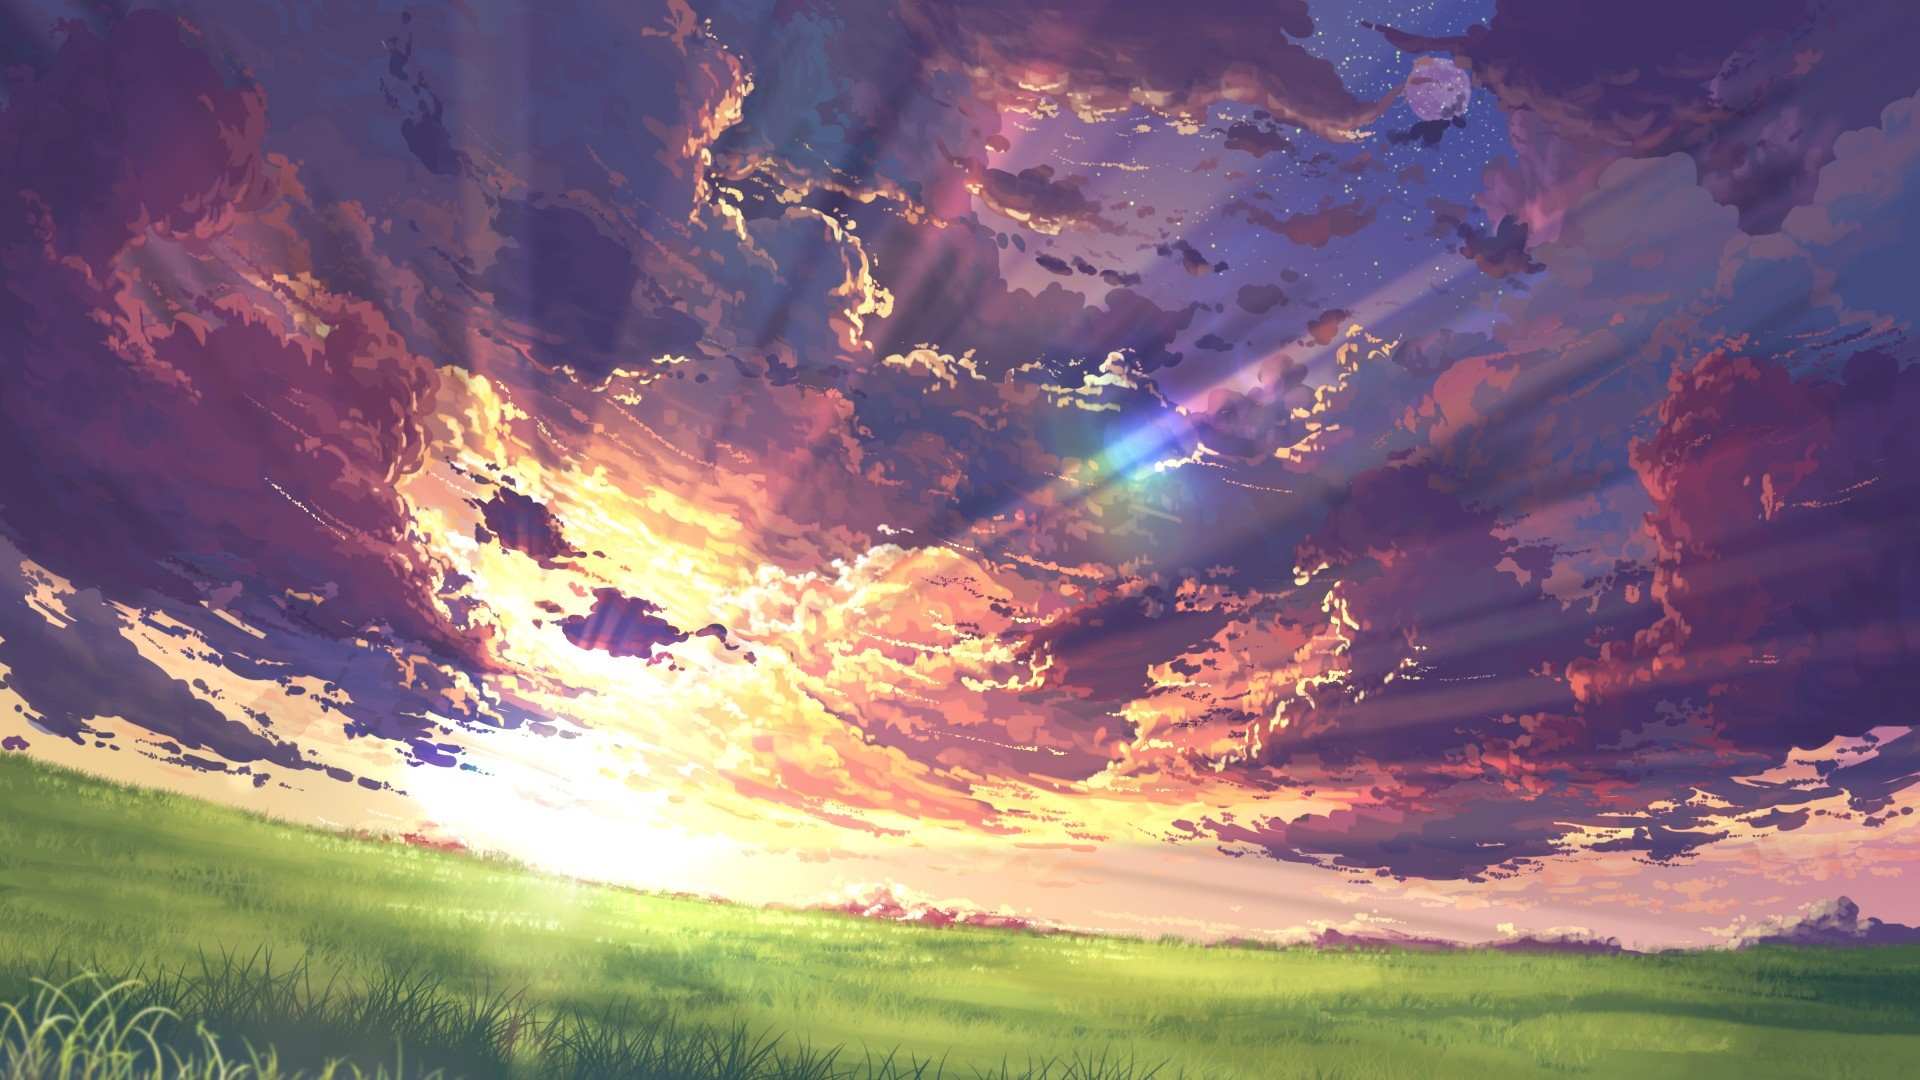 Anime Clouds wallpaper